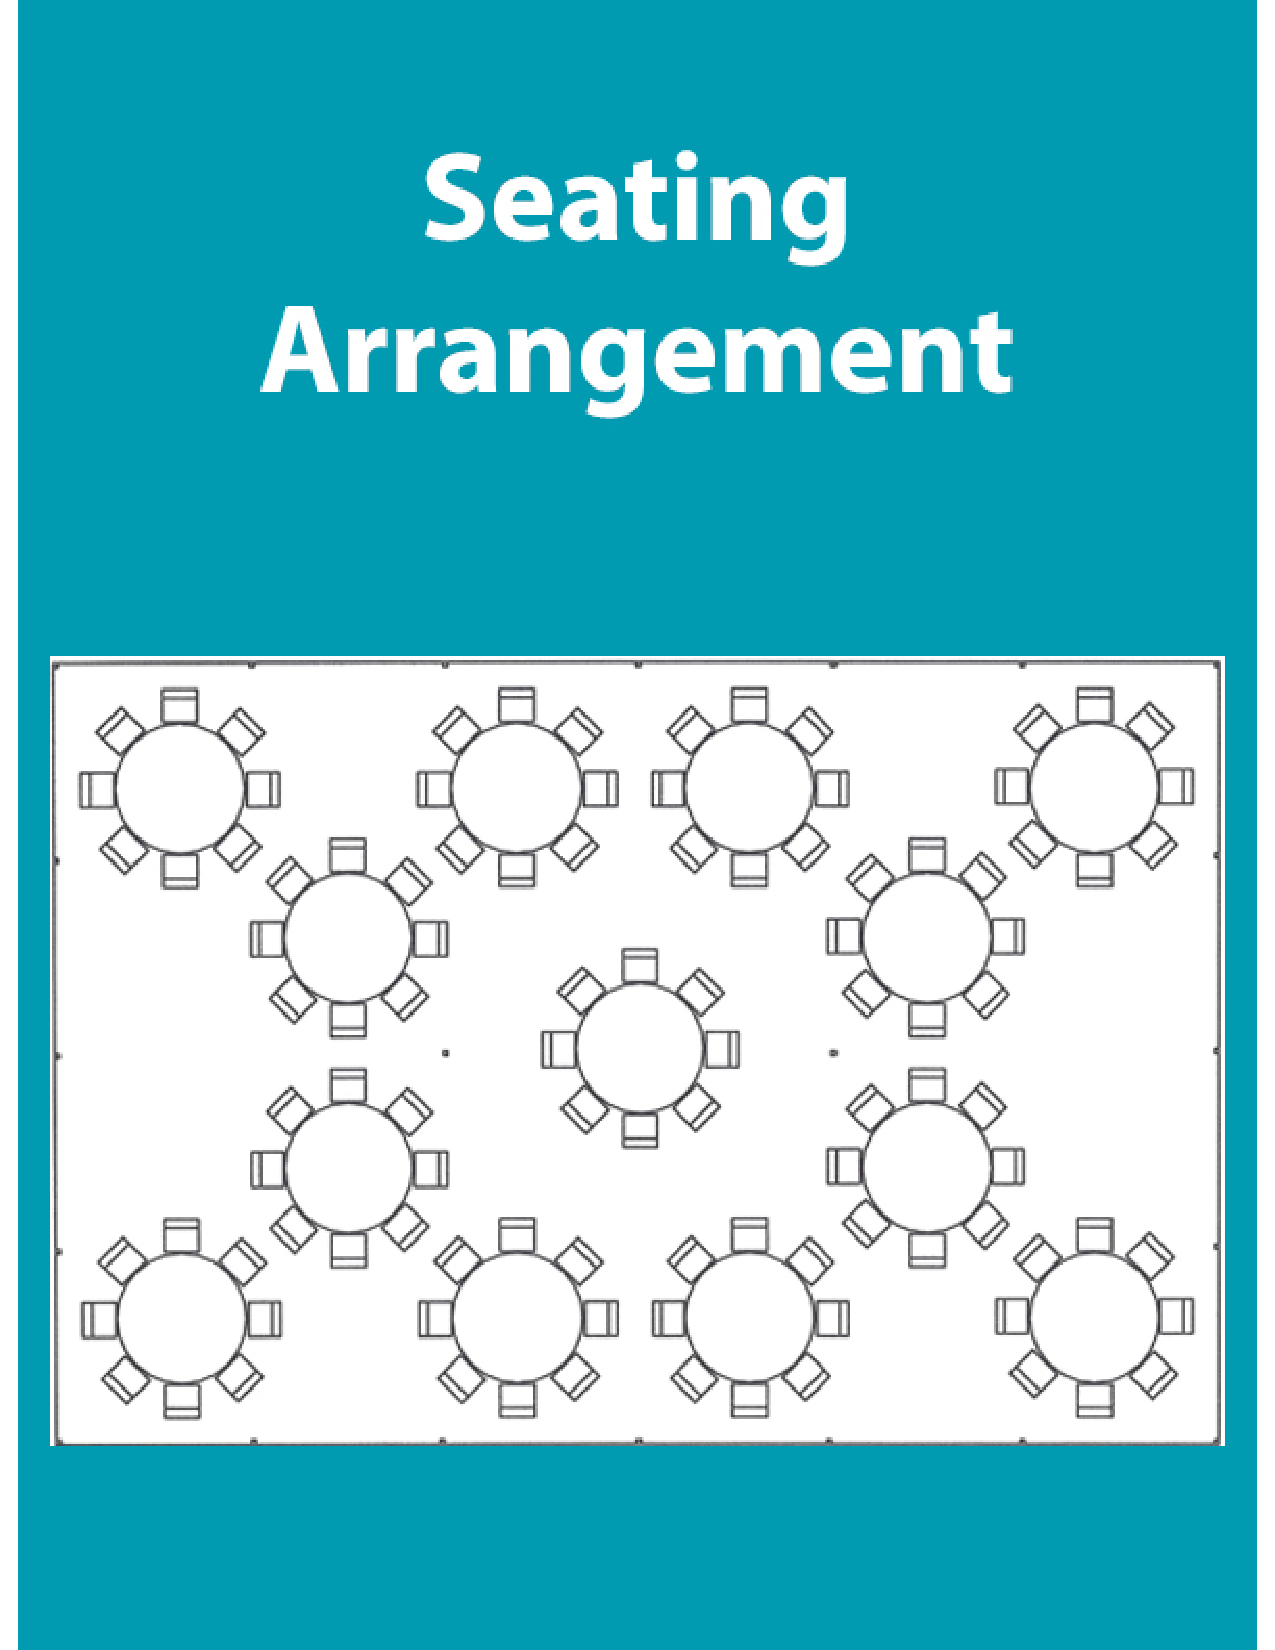 Seating Arrangement - Page 1